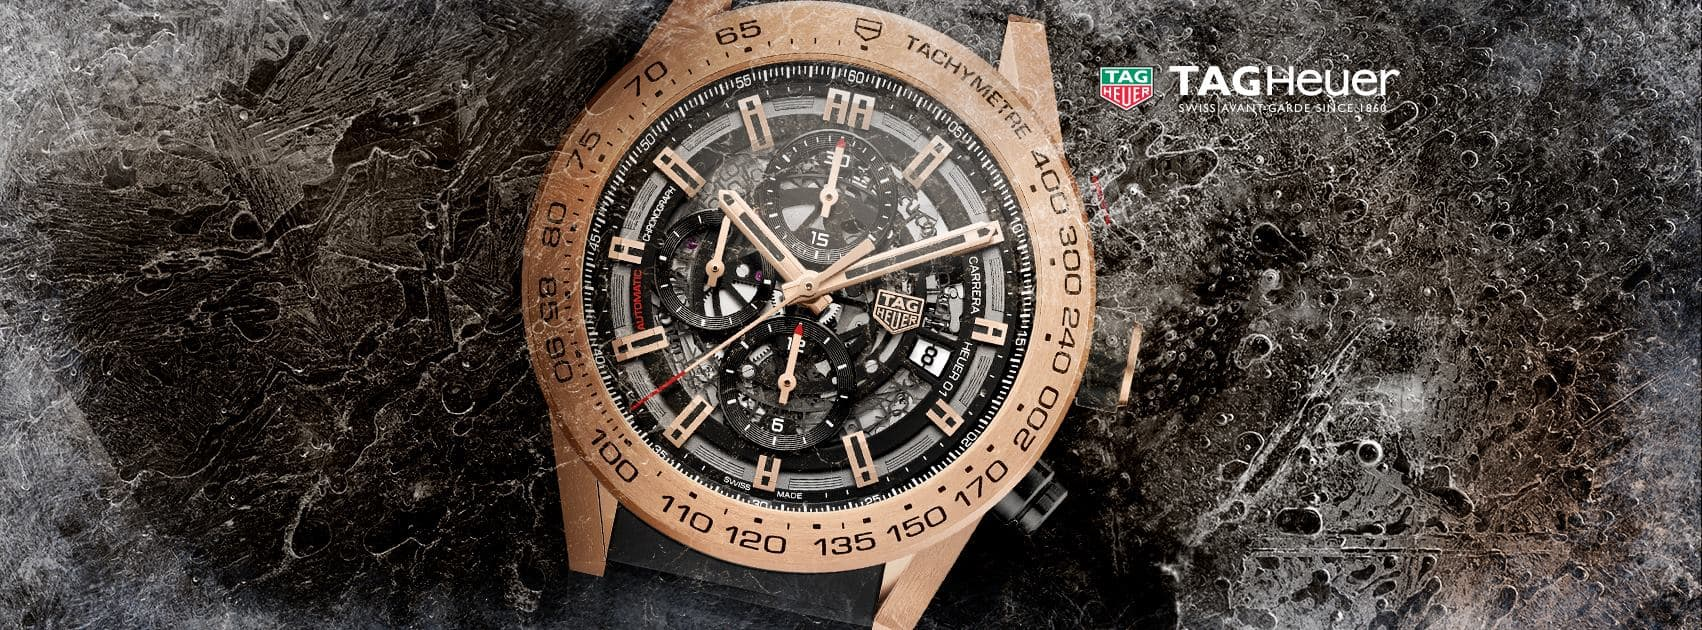 Kings Jewelry Tag Heuer